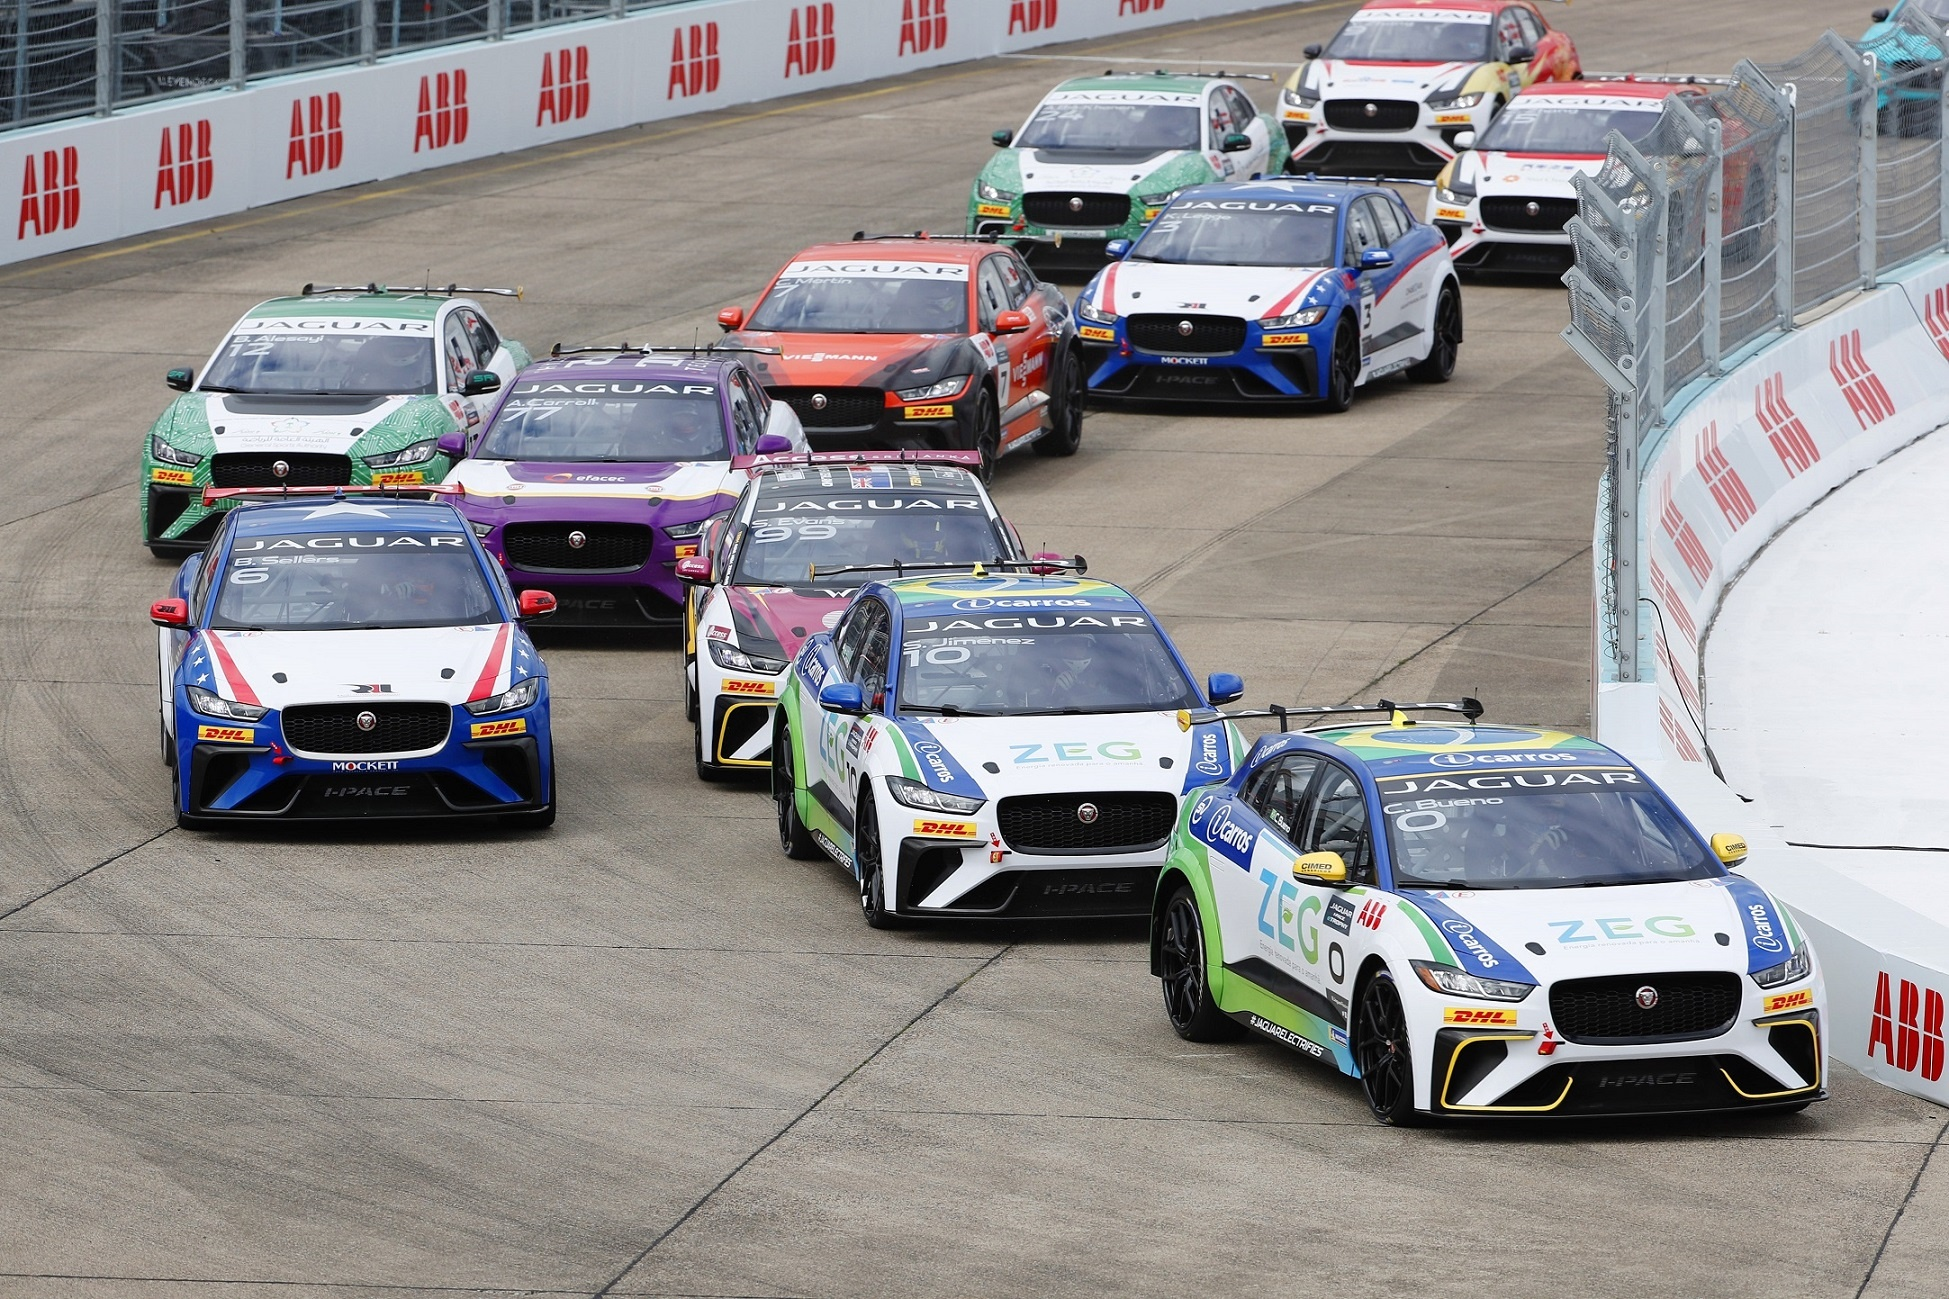 JAGUAR I-PACE eTROPHY SERIES TO GET BACK ON TRACK IN BERLIN IN AUGUST